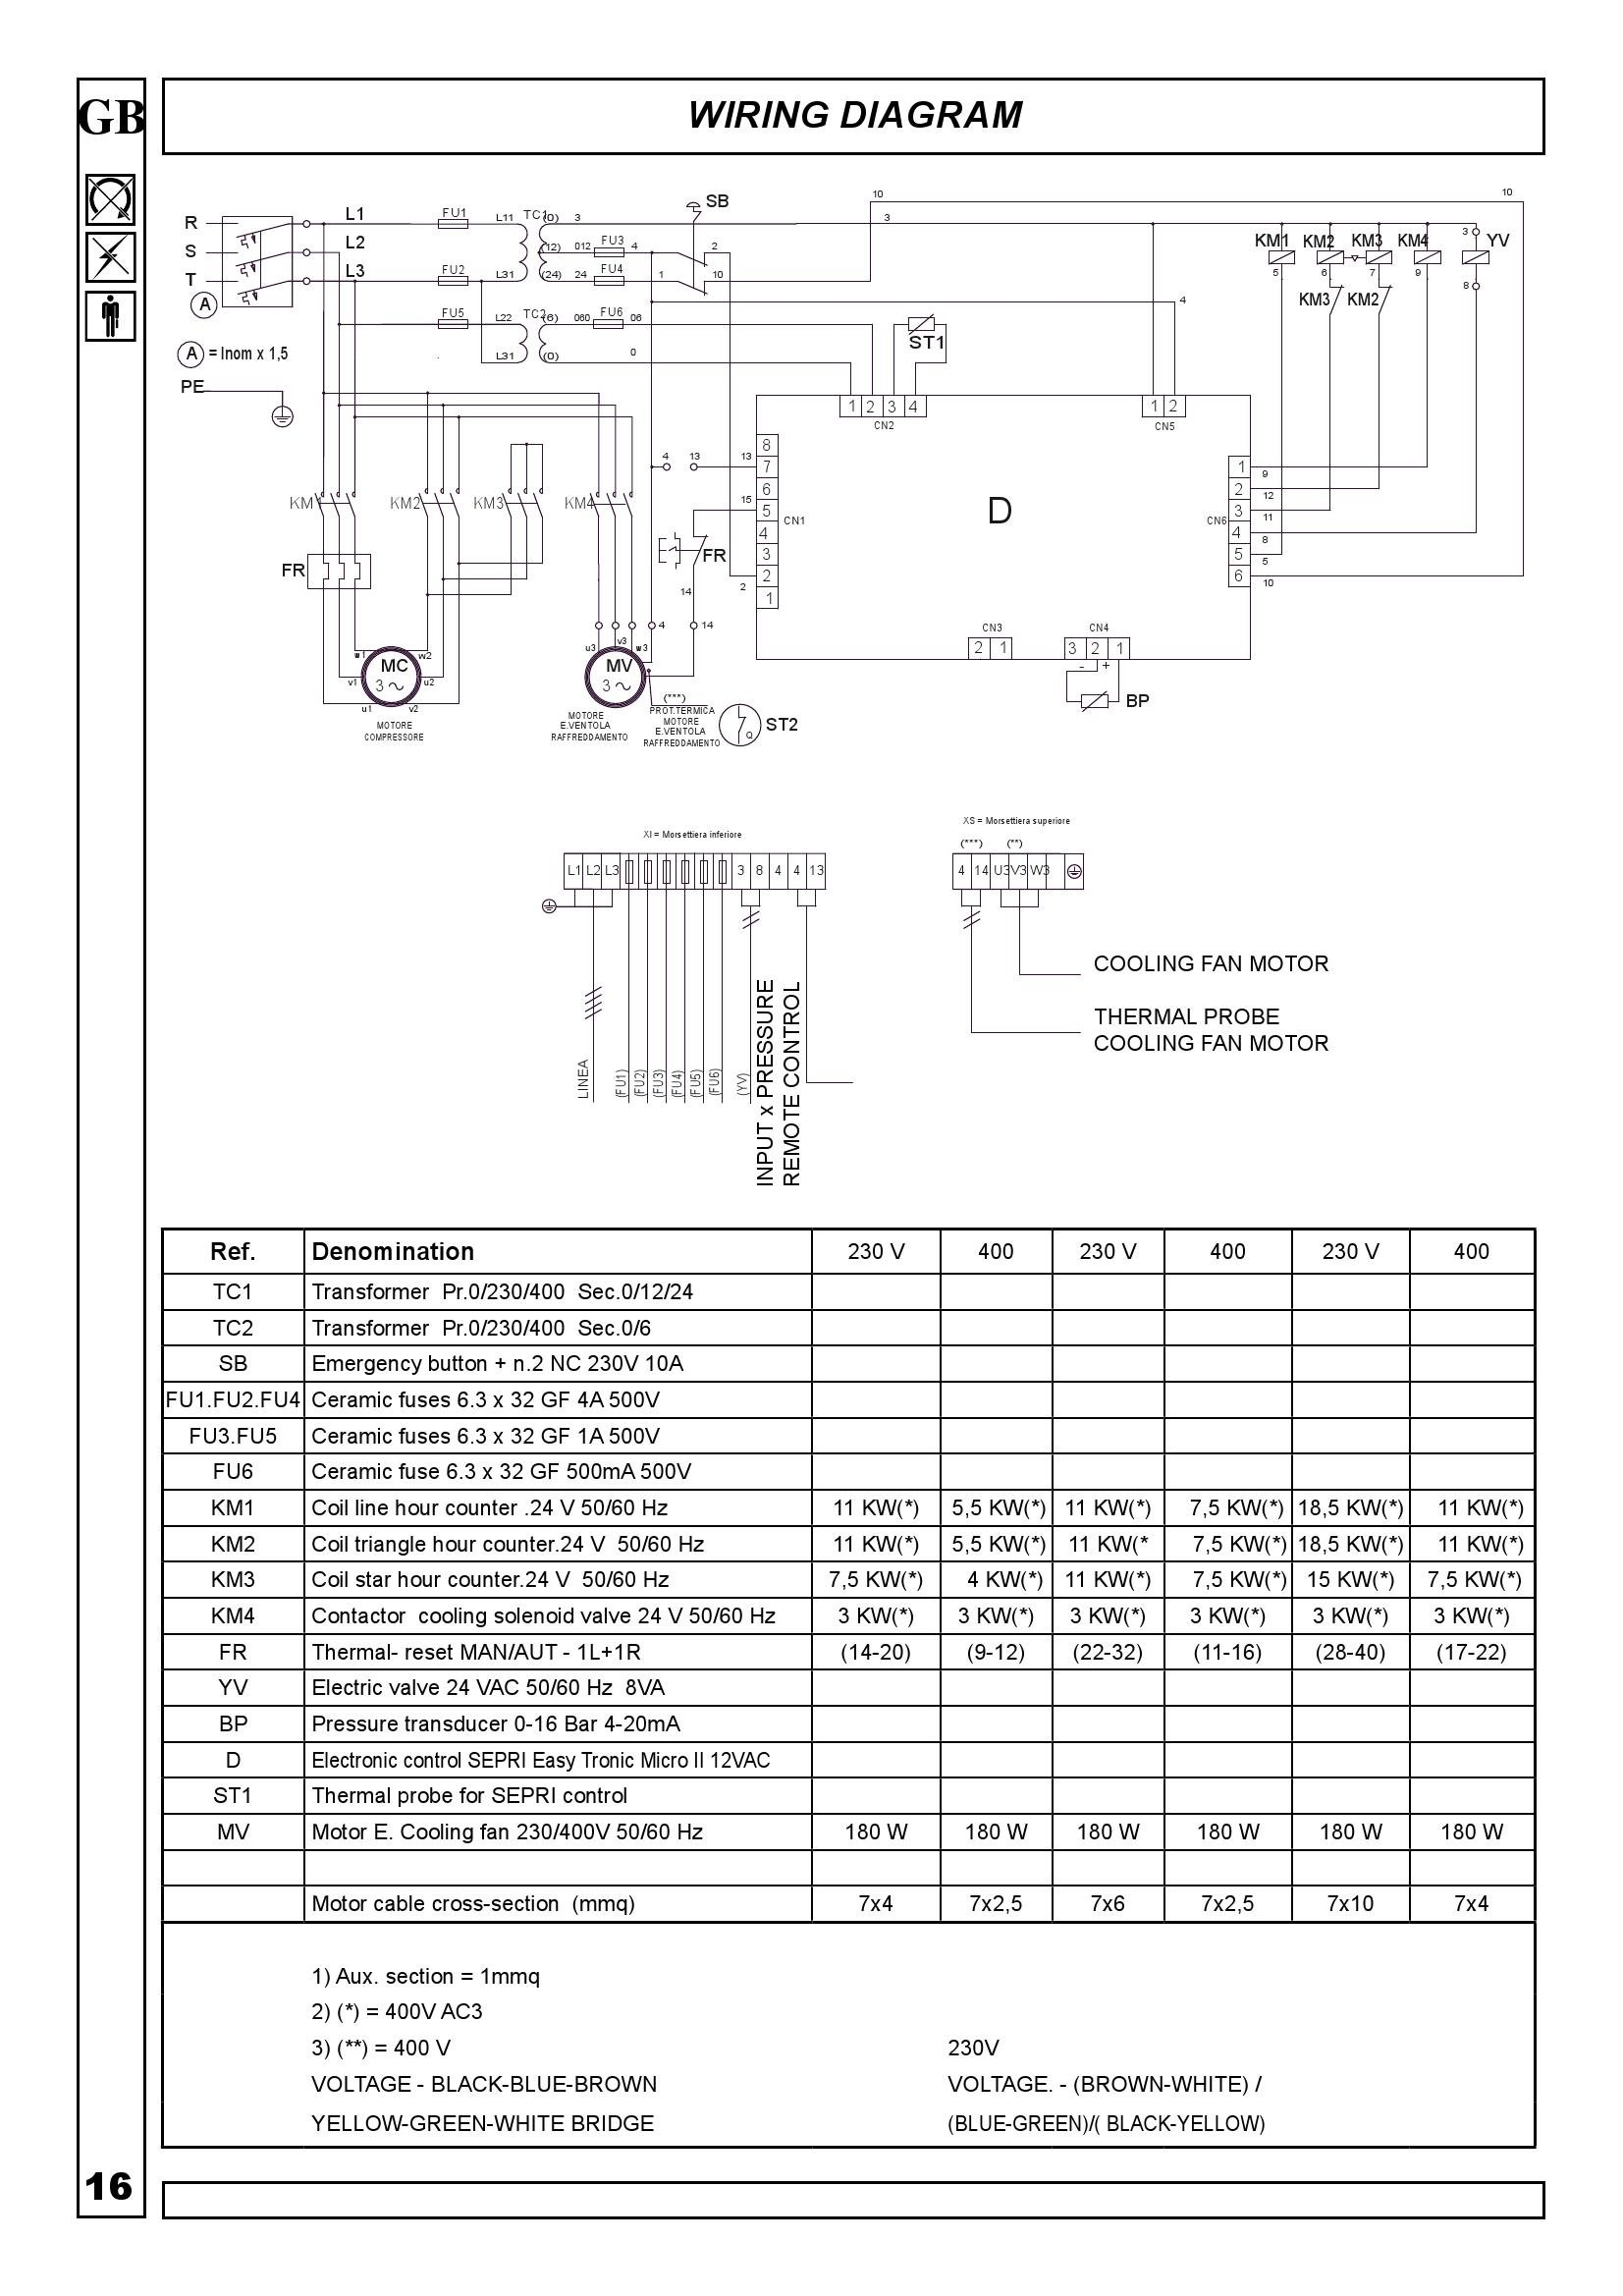 05231 wiring diagram wiring diagram for a compressor wiring diagrams schematics